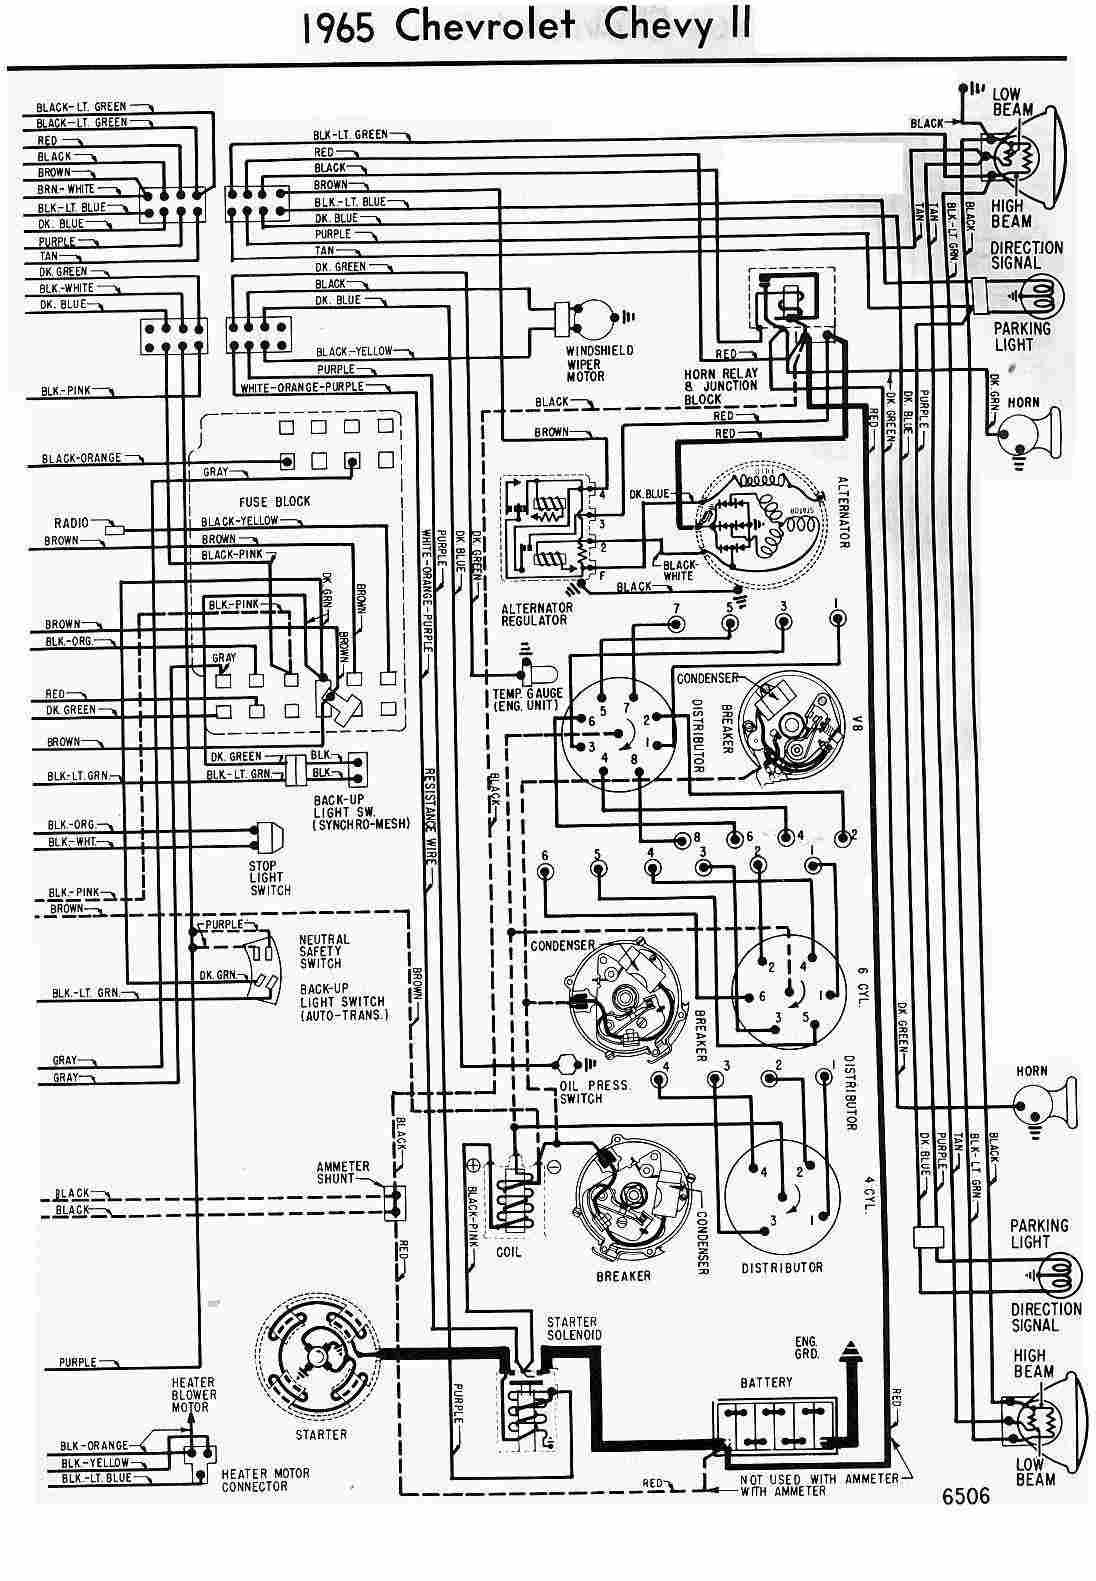 1969 Camaro Wiring Diagram Manual Free Pdf For 1967 Rs Ss Chevrolet Car Manuals Diagrams Fault Codes Rh Automotive Net 1968 Online Fuel Gauge